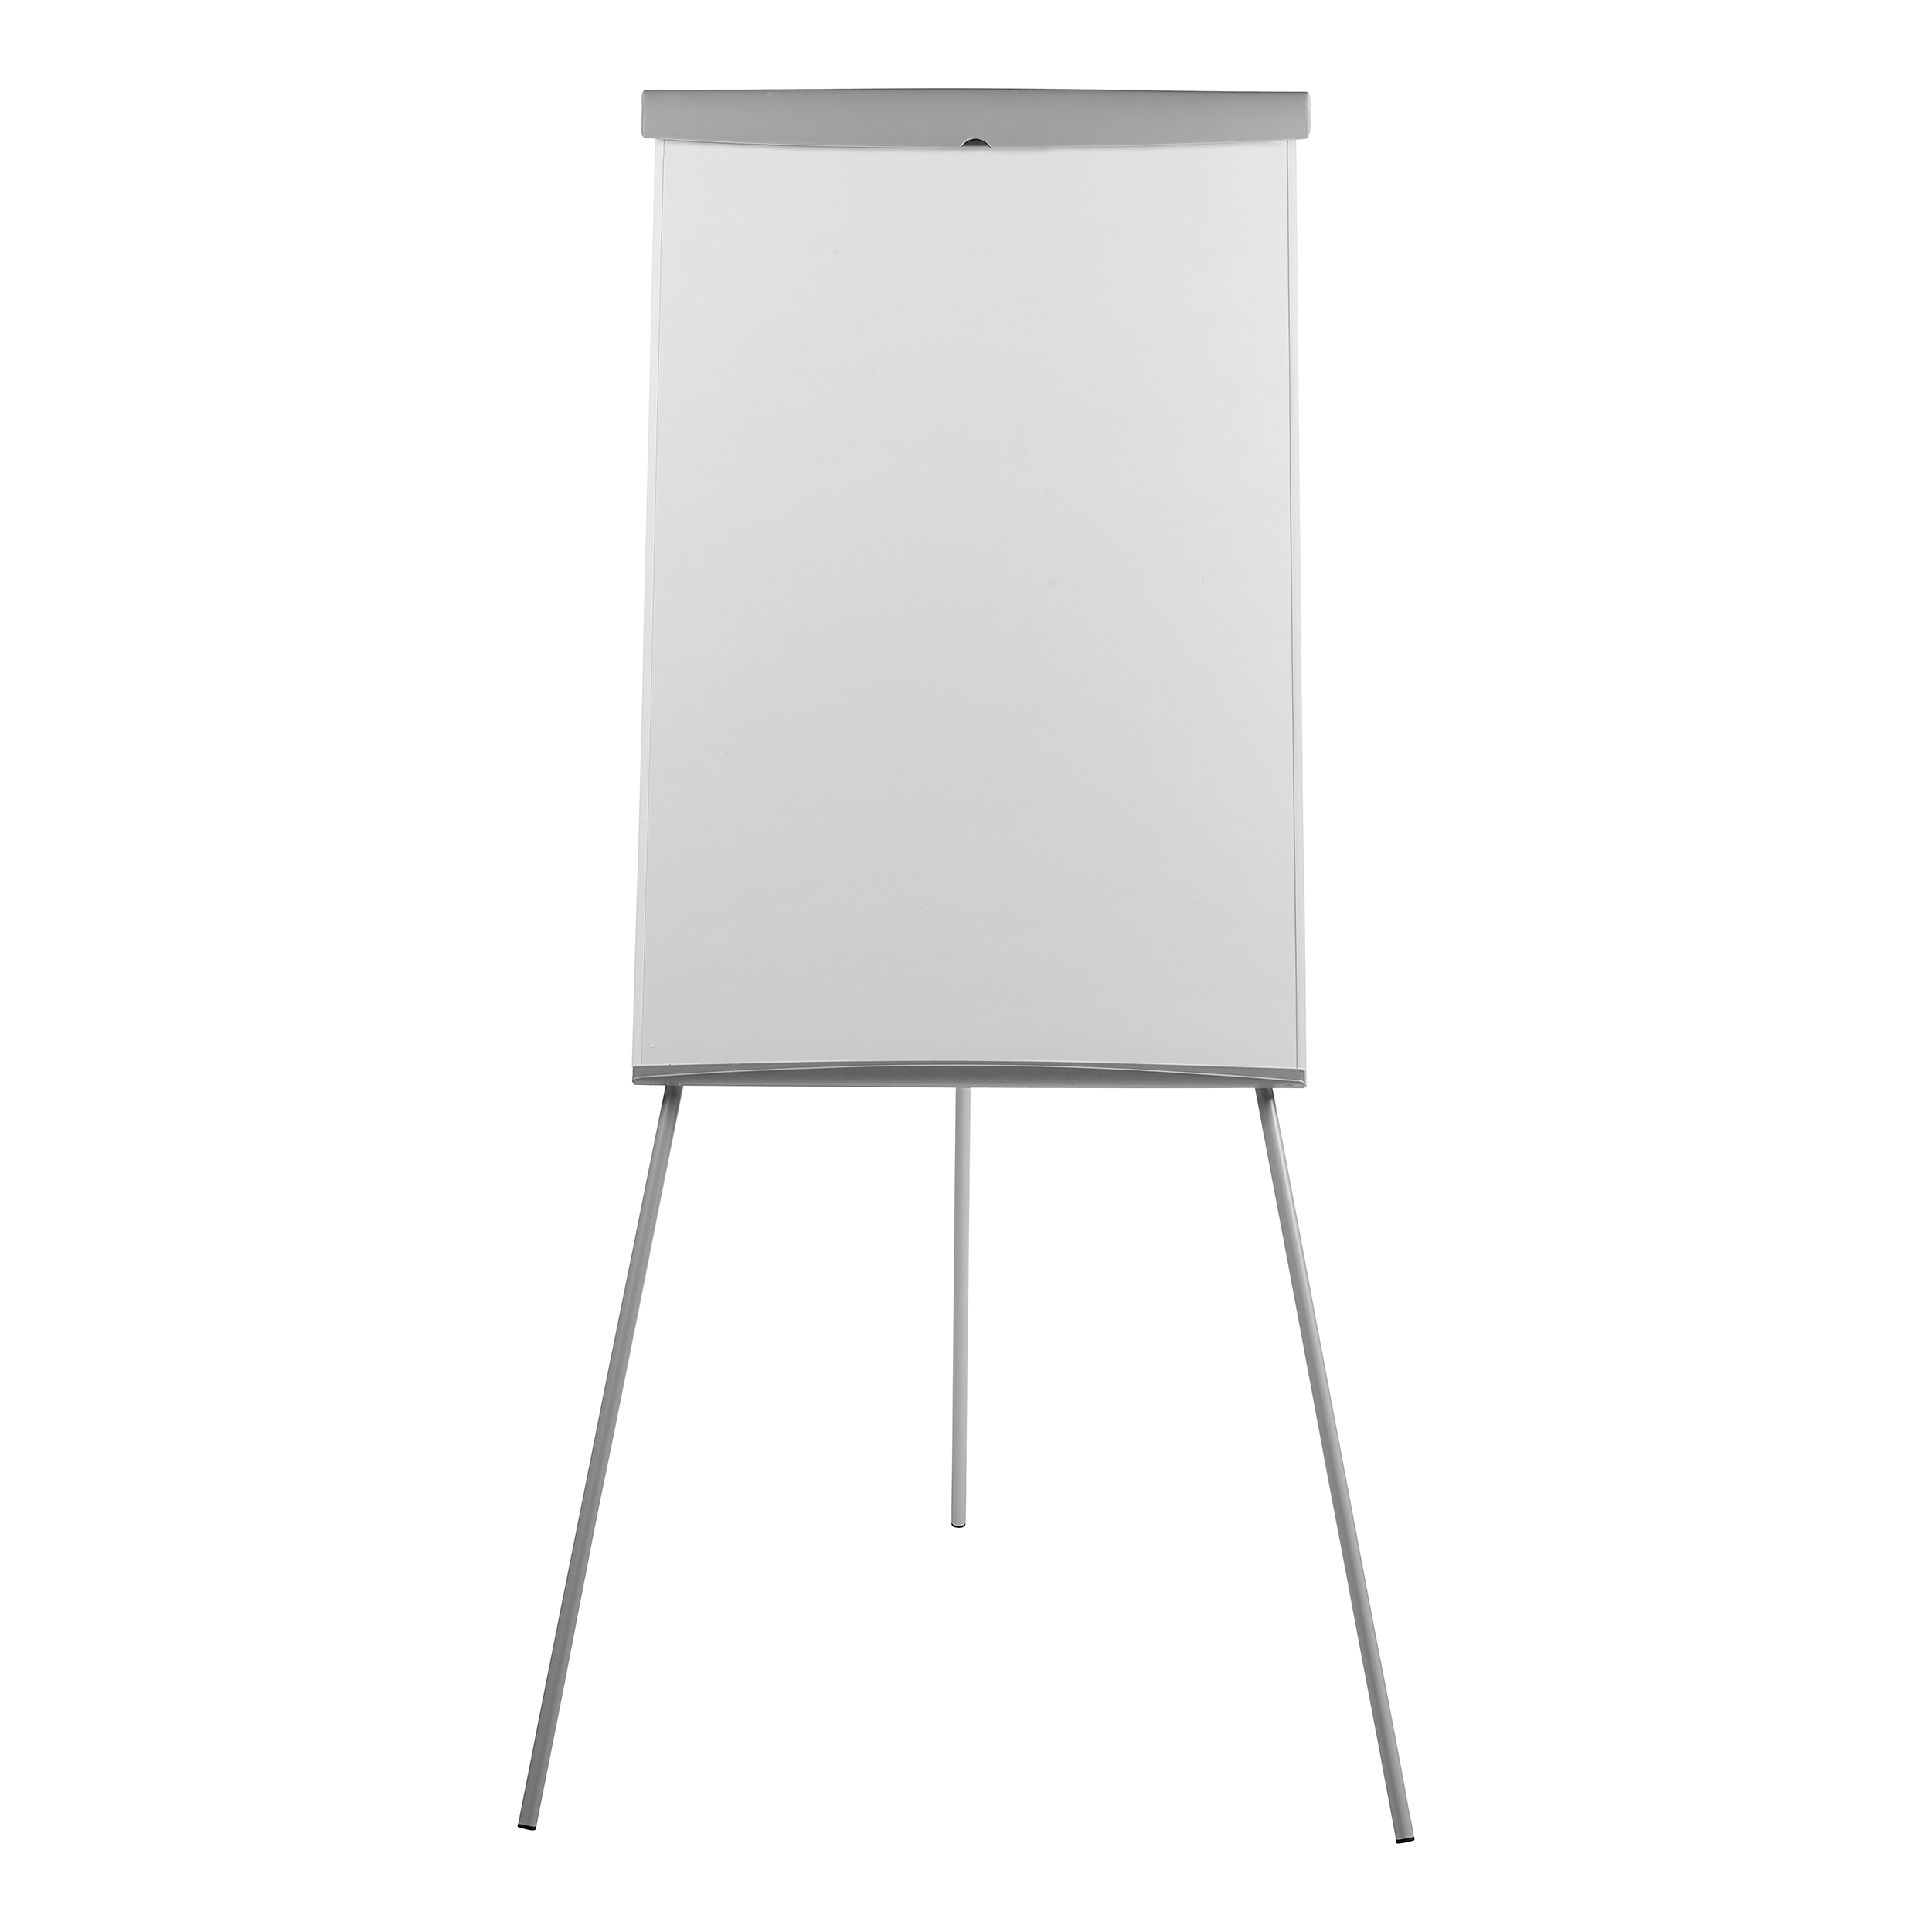 Easels 5 Star Office Flipchart Easel with W670xH990mm Board W700xD82xH1900mm